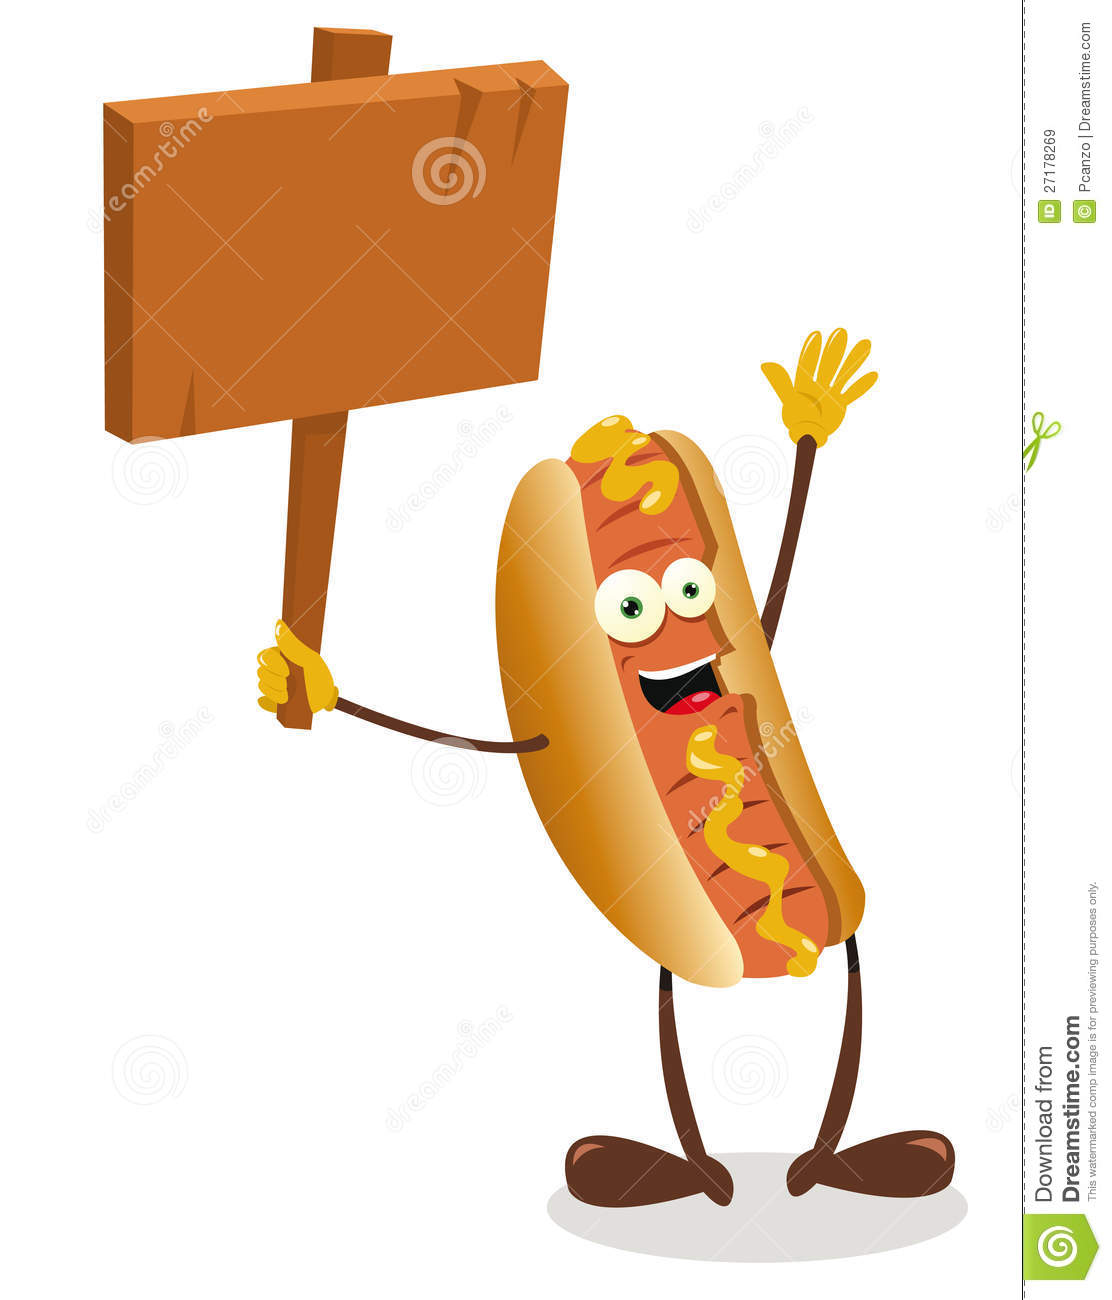 Funny Hot Dog Holding A Wooden Sign Royalty Free Stock Images   Image